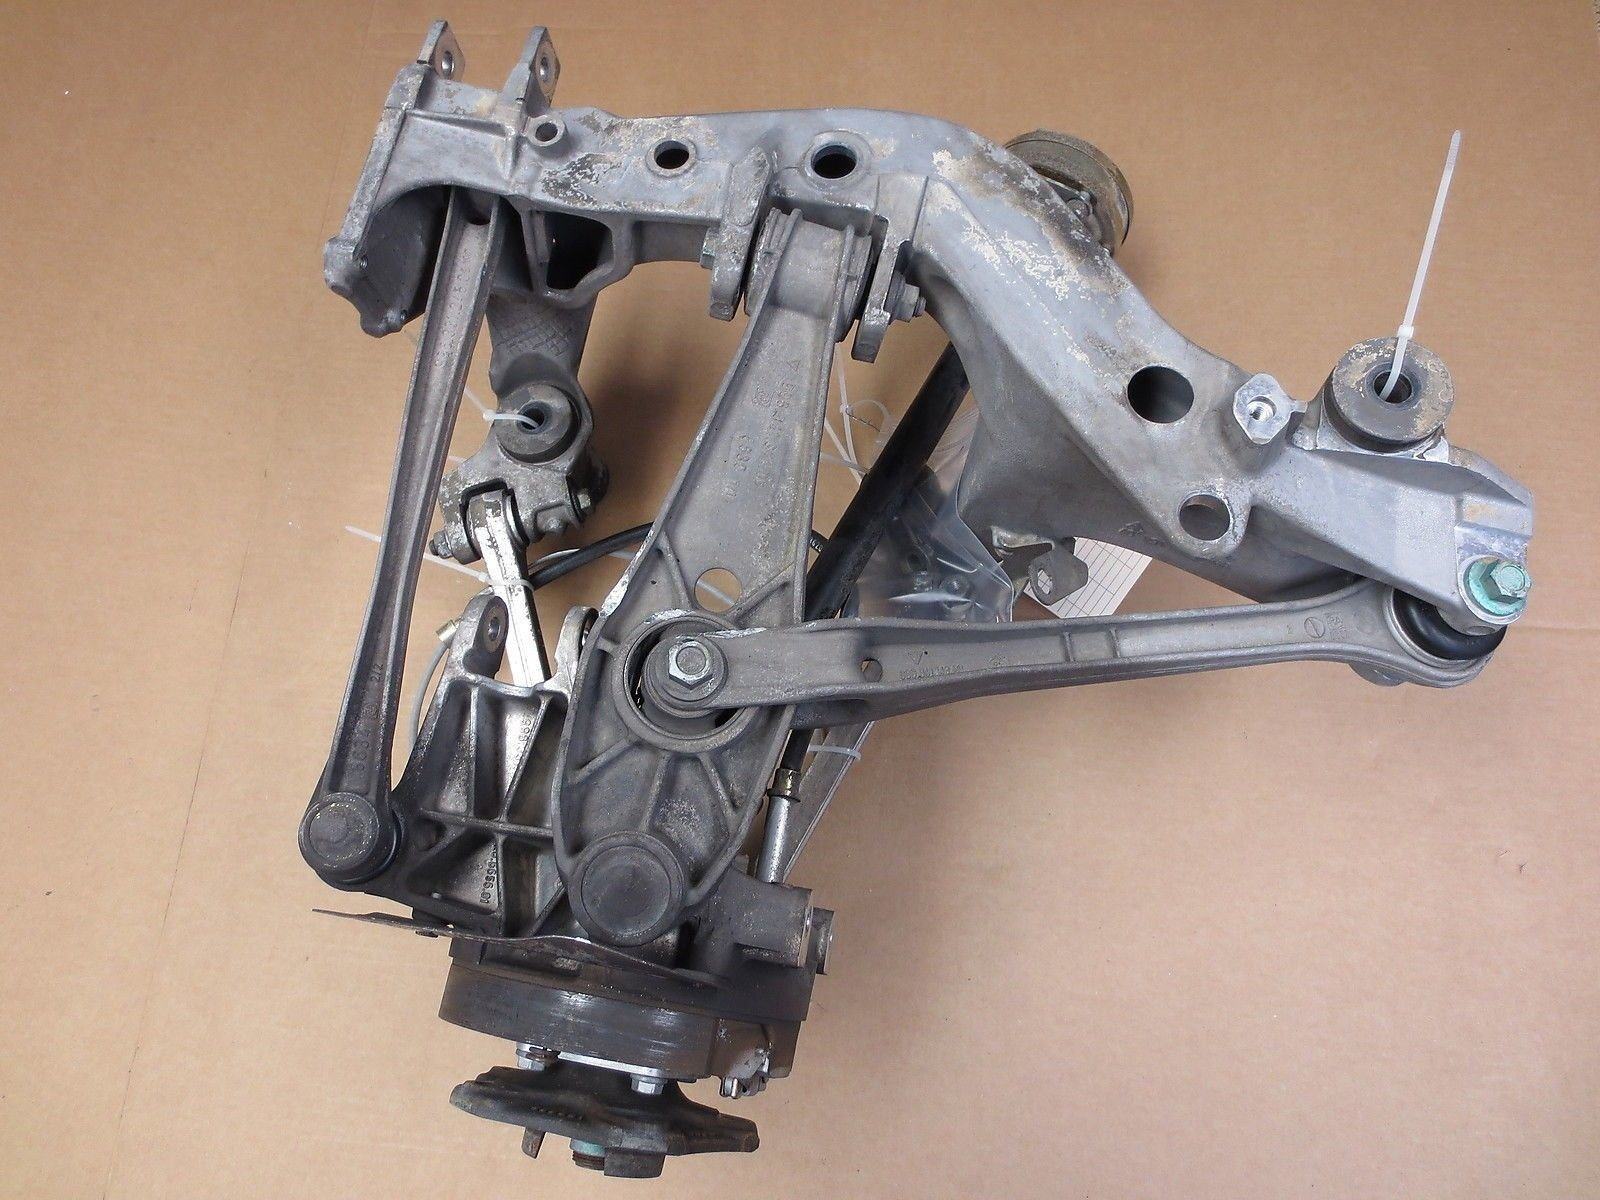 99 RWD Porsche 911 Carrera Coupe 996 L REAR SUBFRAME HUB AXLE CONTROL ARMS 113k